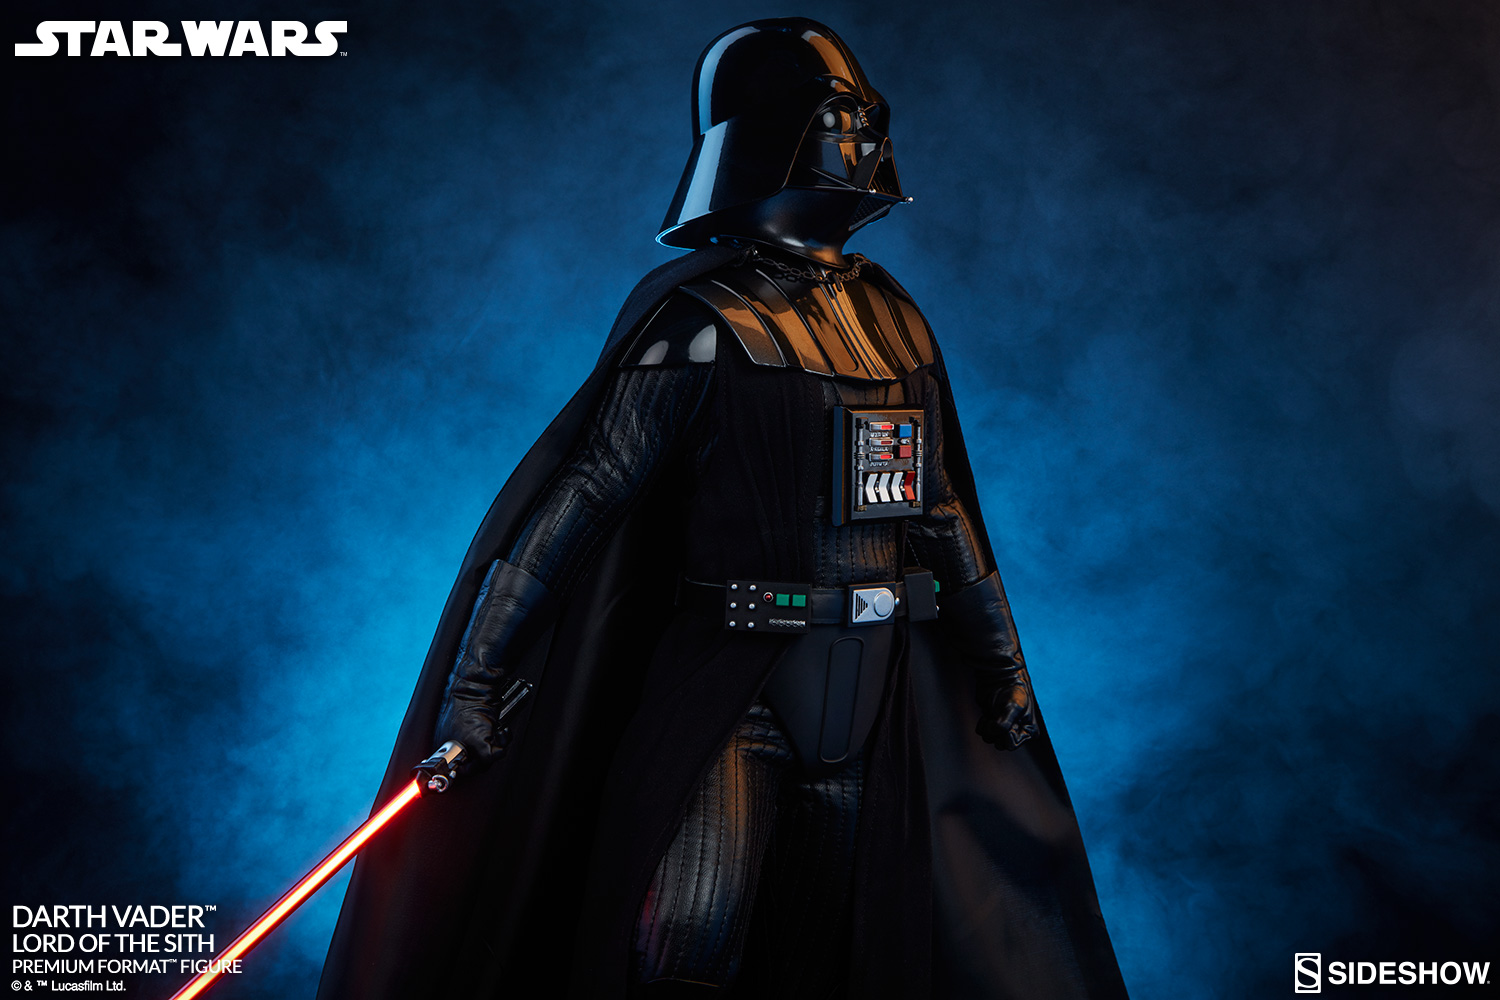 star wars darth vader lord of the sith premium format tm sideshow collectibles. Black Bedroom Furniture Sets. Home Design Ideas